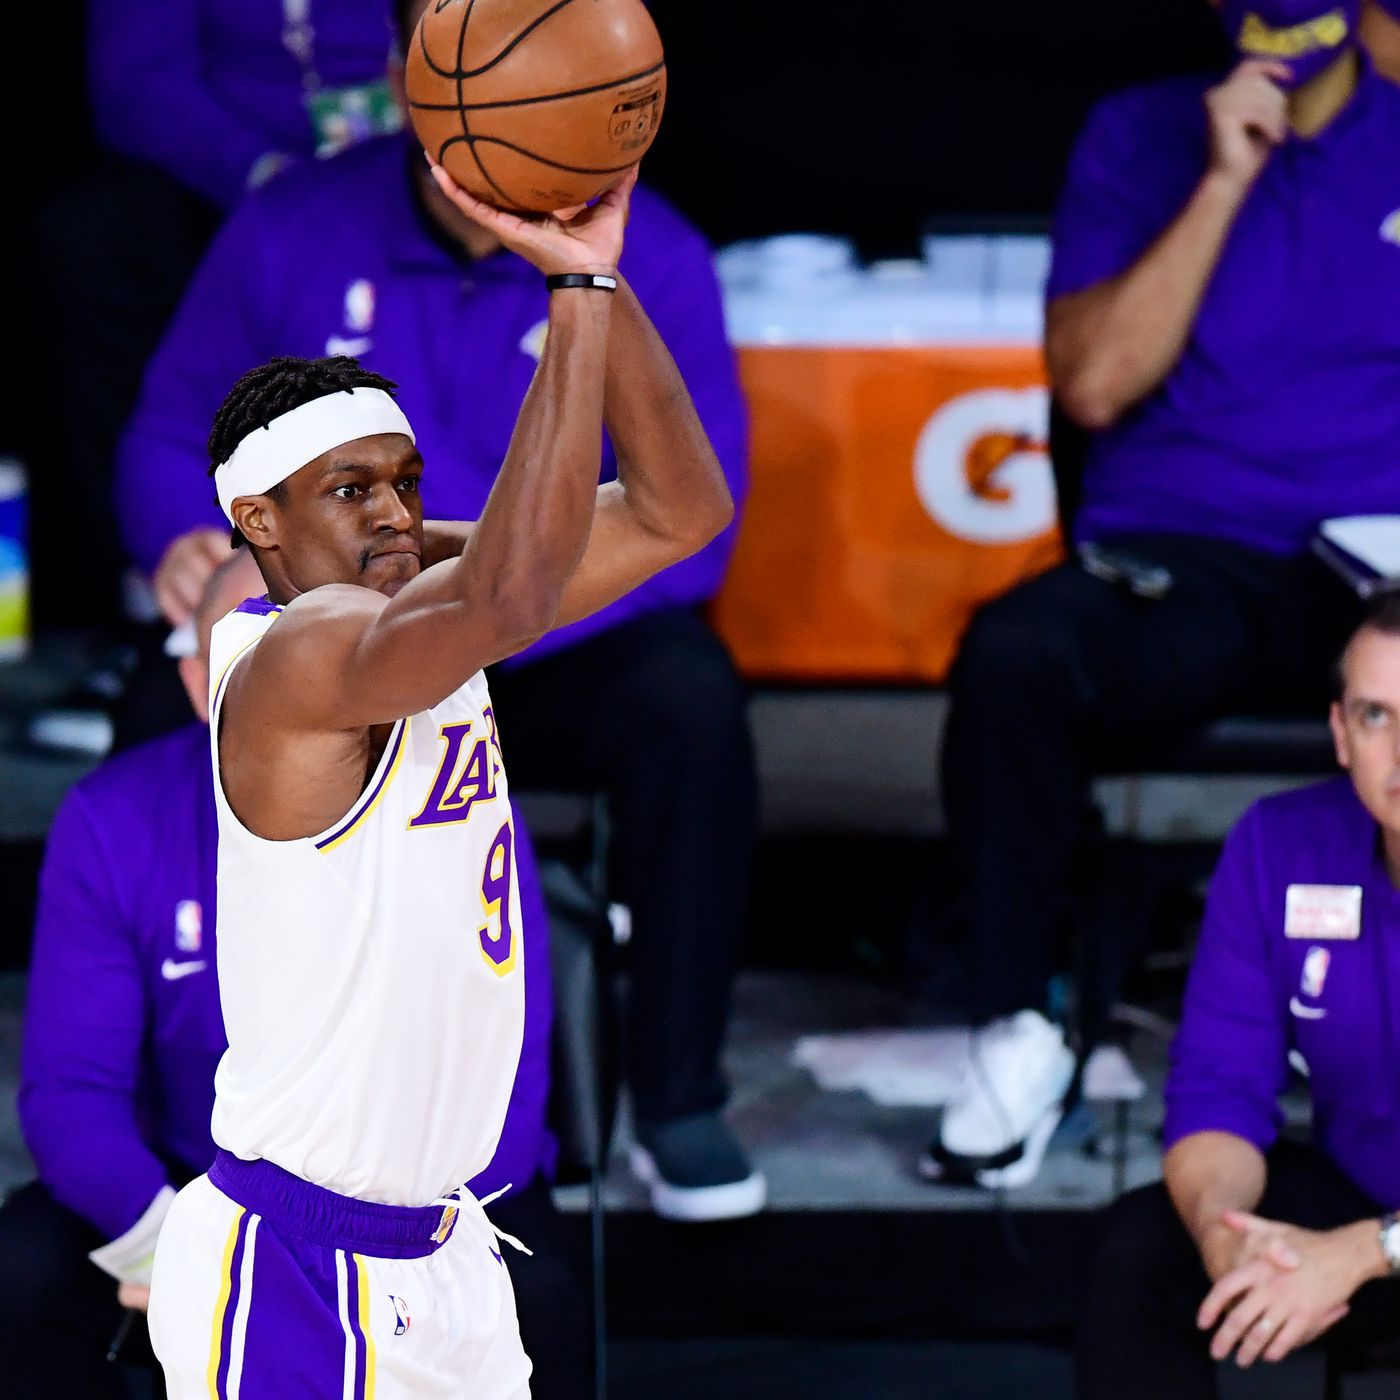 The Lakers have officially signed Rajon Rondo in free agency ...